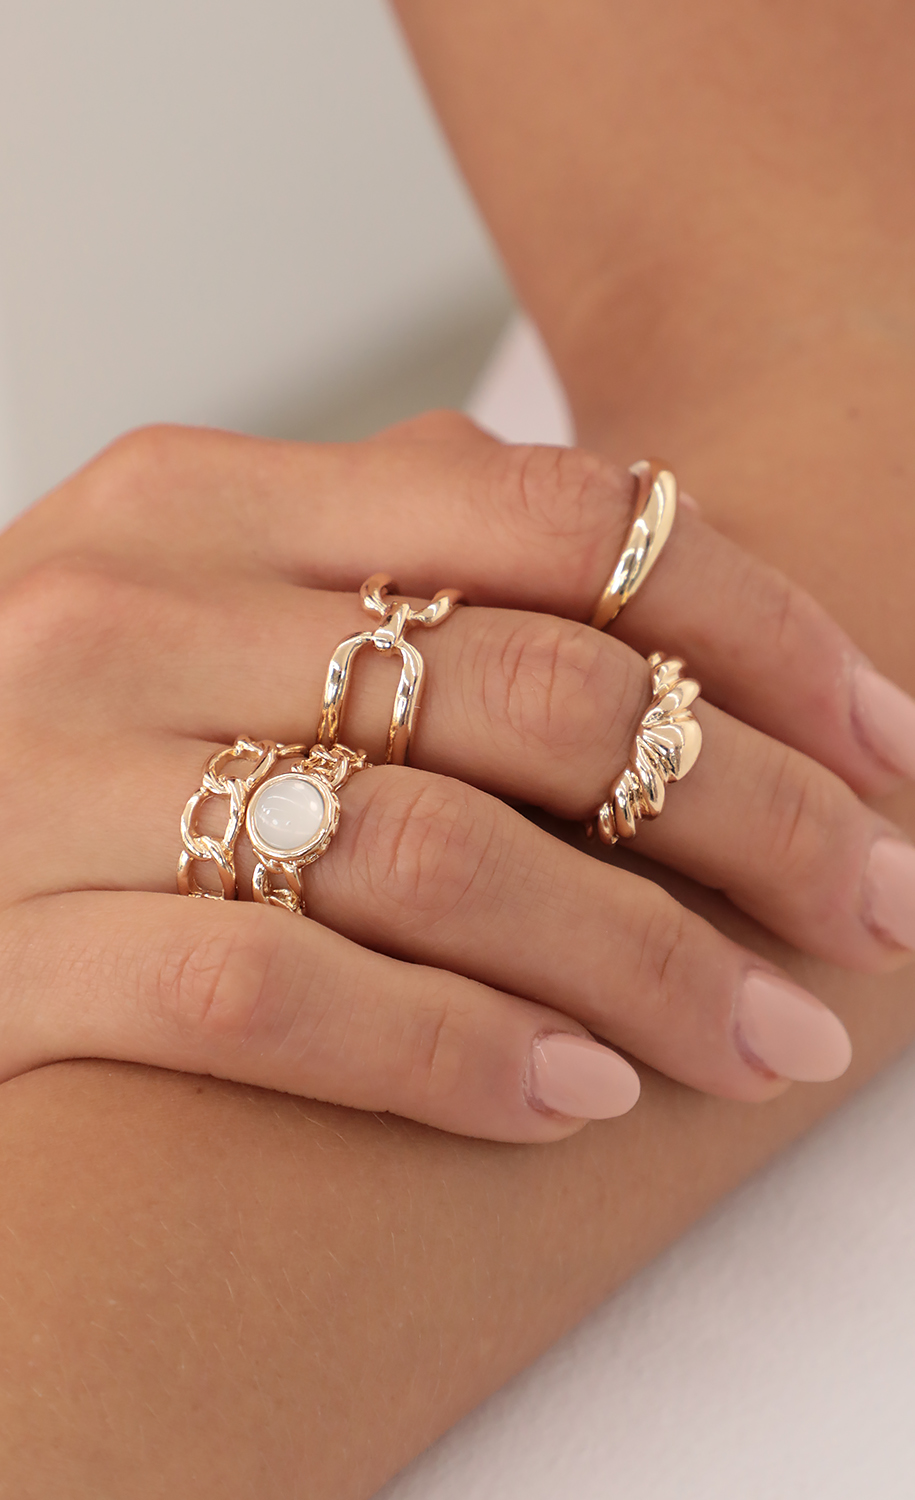 5 Piece Chain Stack Rings in Gold